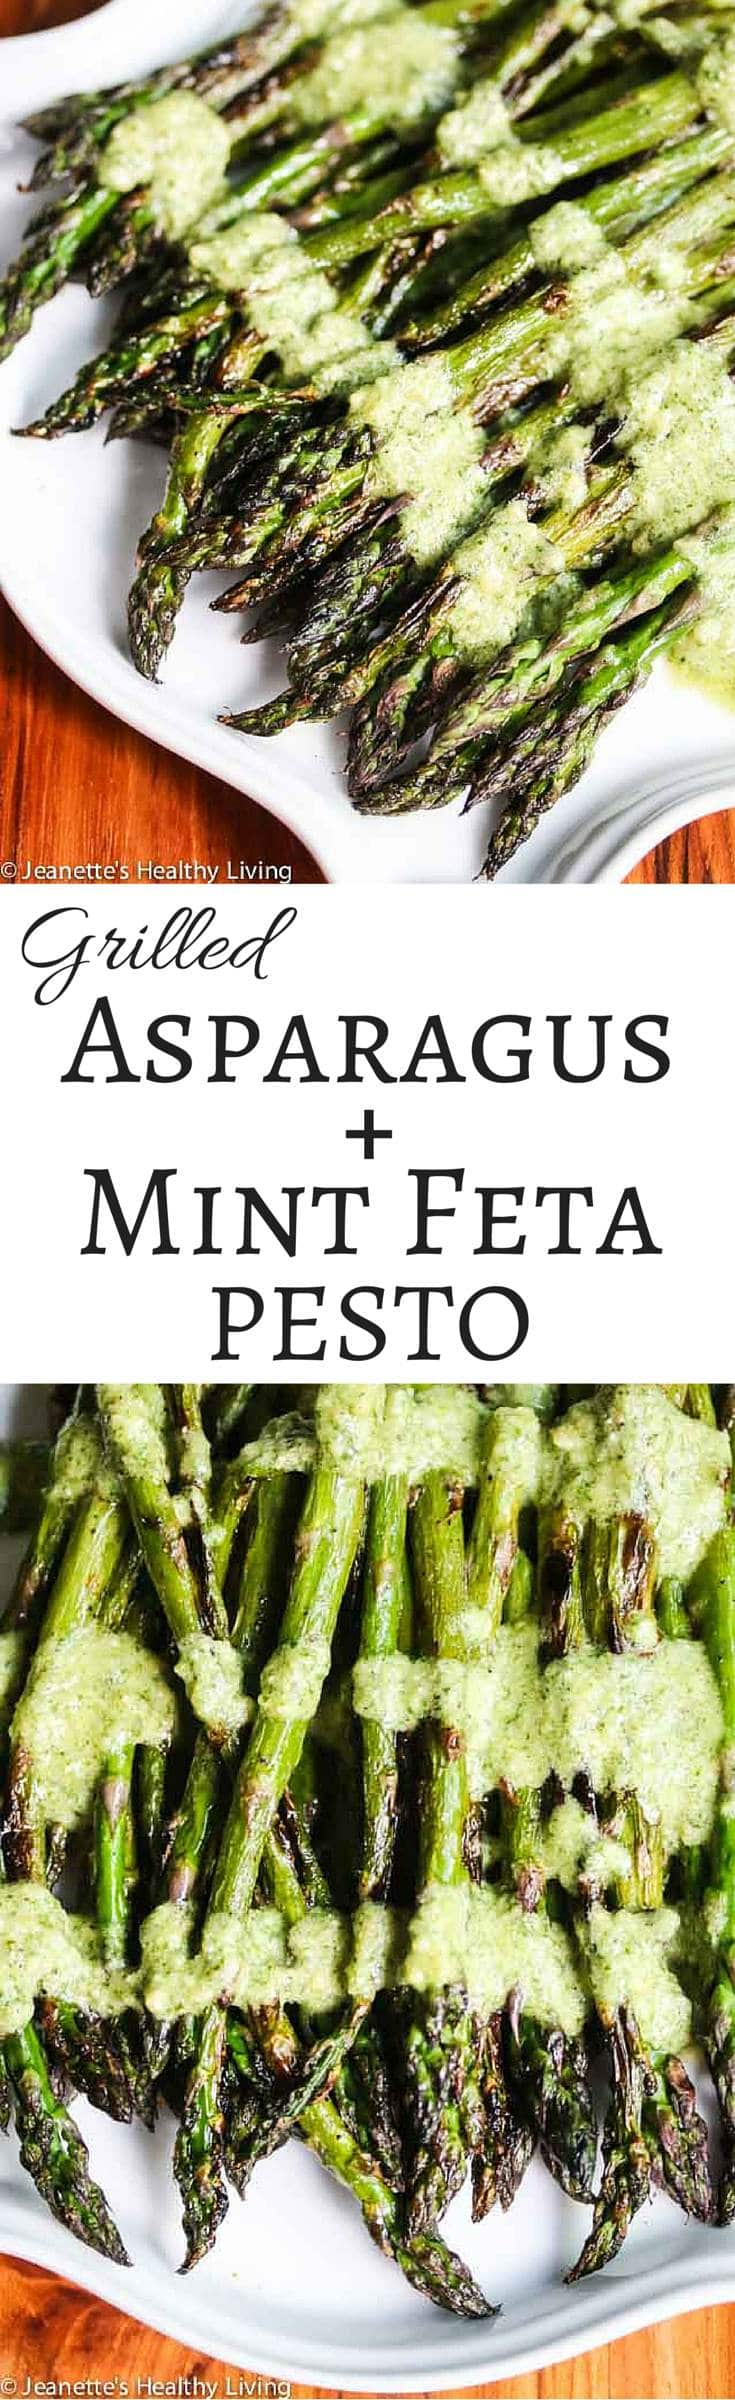 Grilled Asparagus with Mint Feta Pesto - the fresh tangy mint feta topping brings grilled asparagus up a notch.